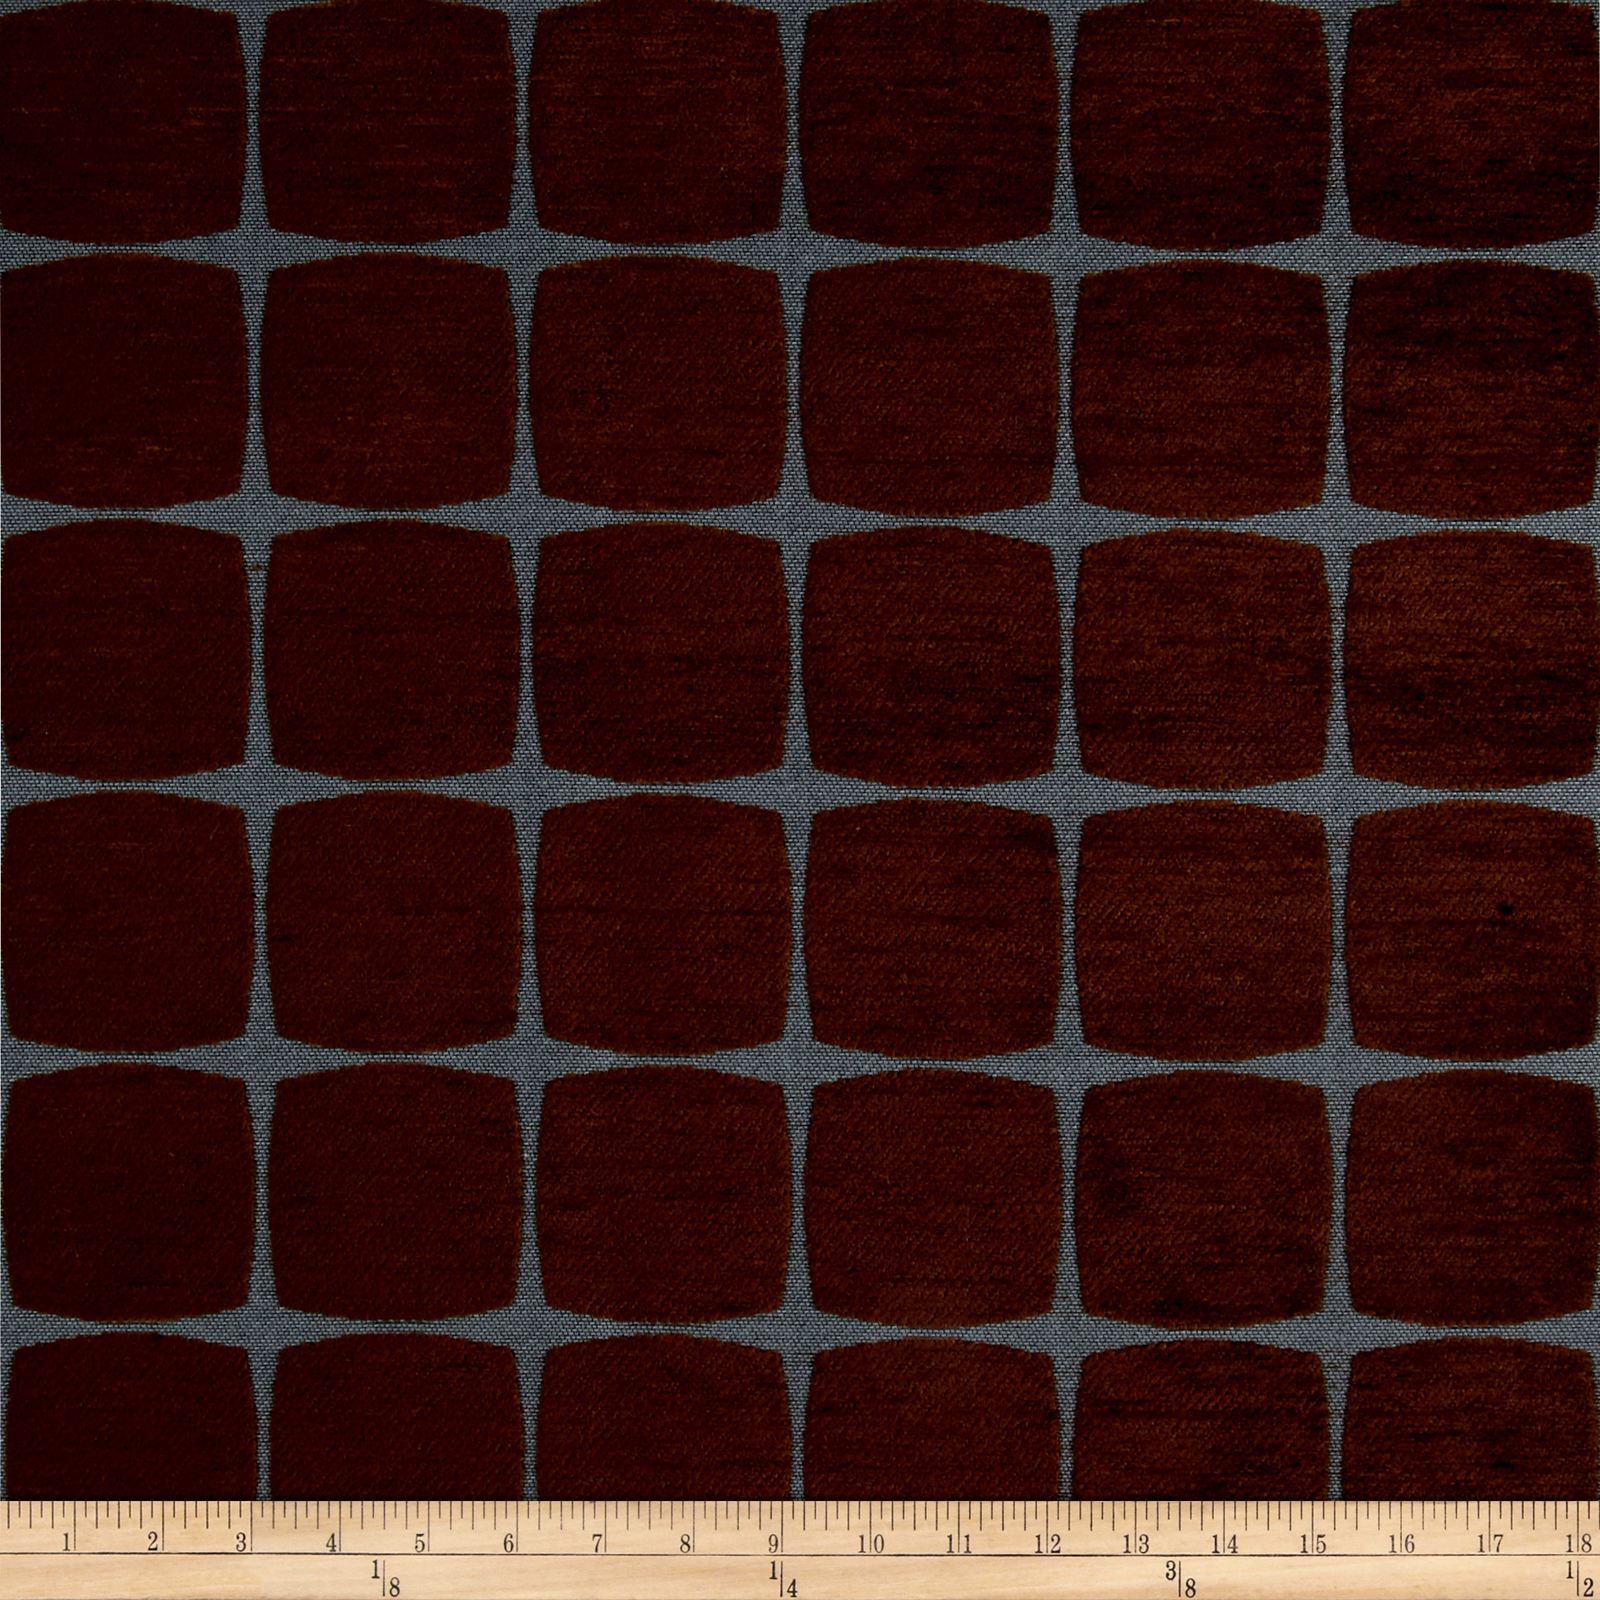 Richloom Bang Chenille Jacquard Noctur Fabric by TNT in USA